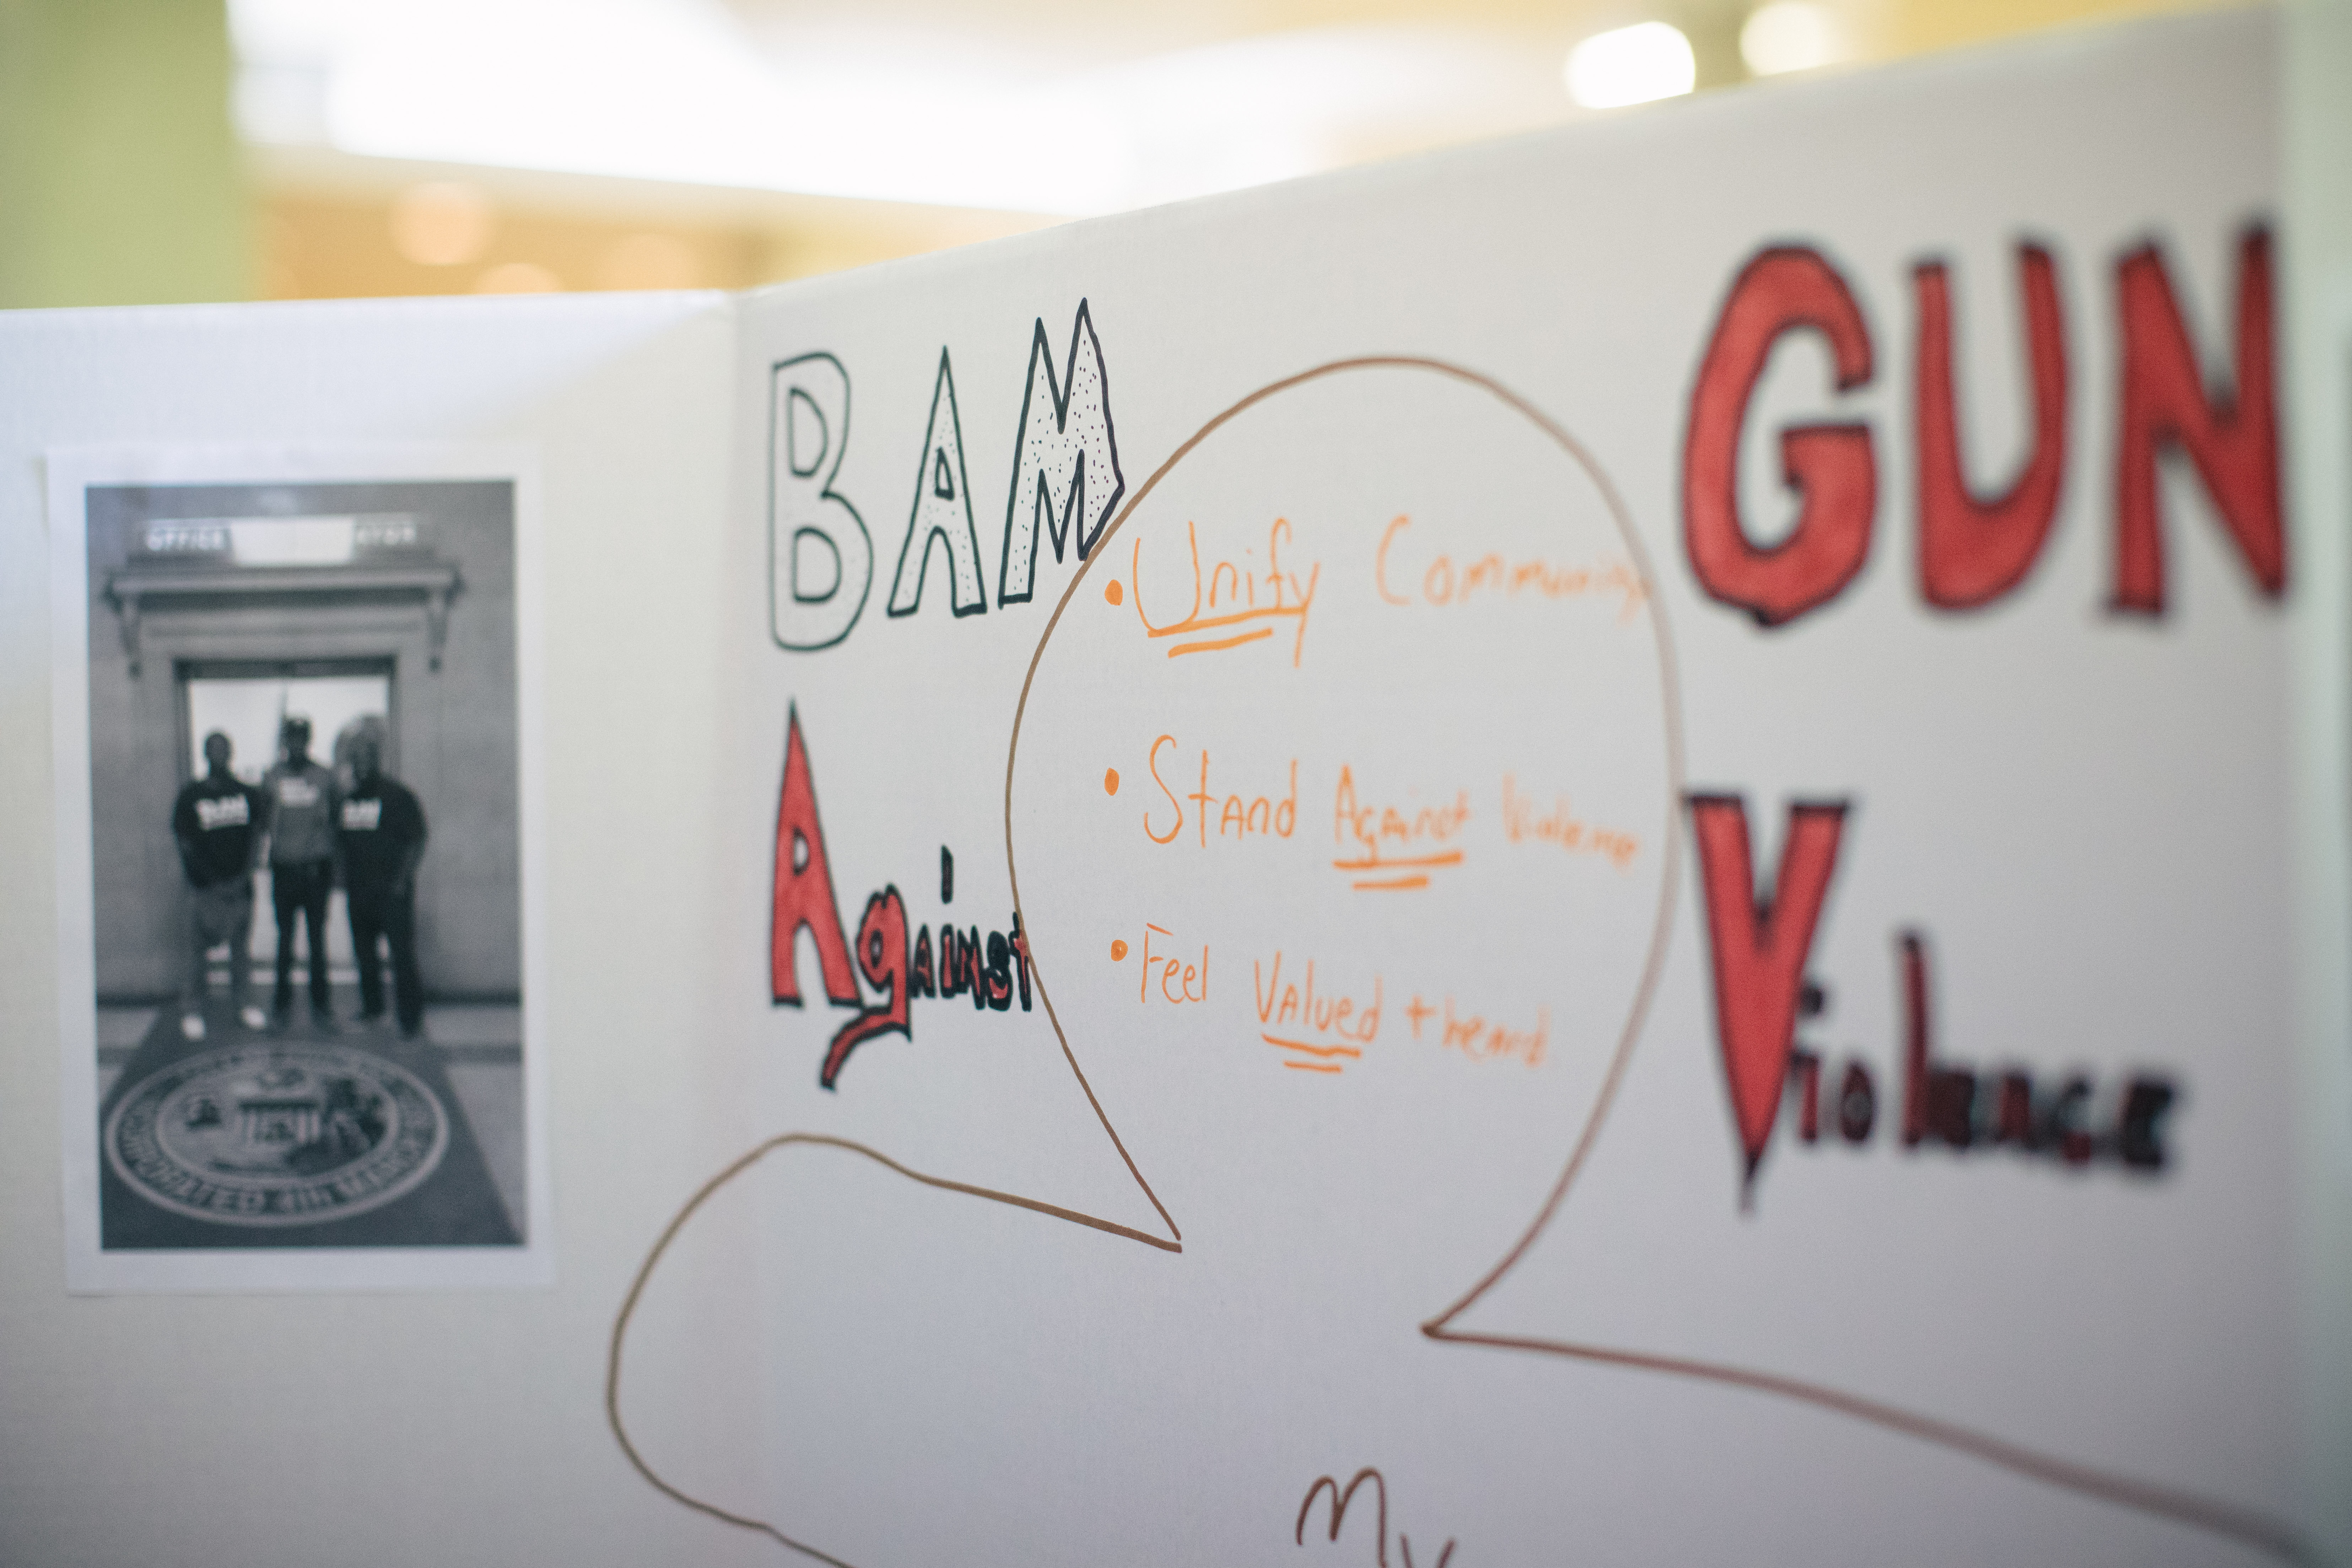 BAM Against Violence - a Chicago project to end gun violence